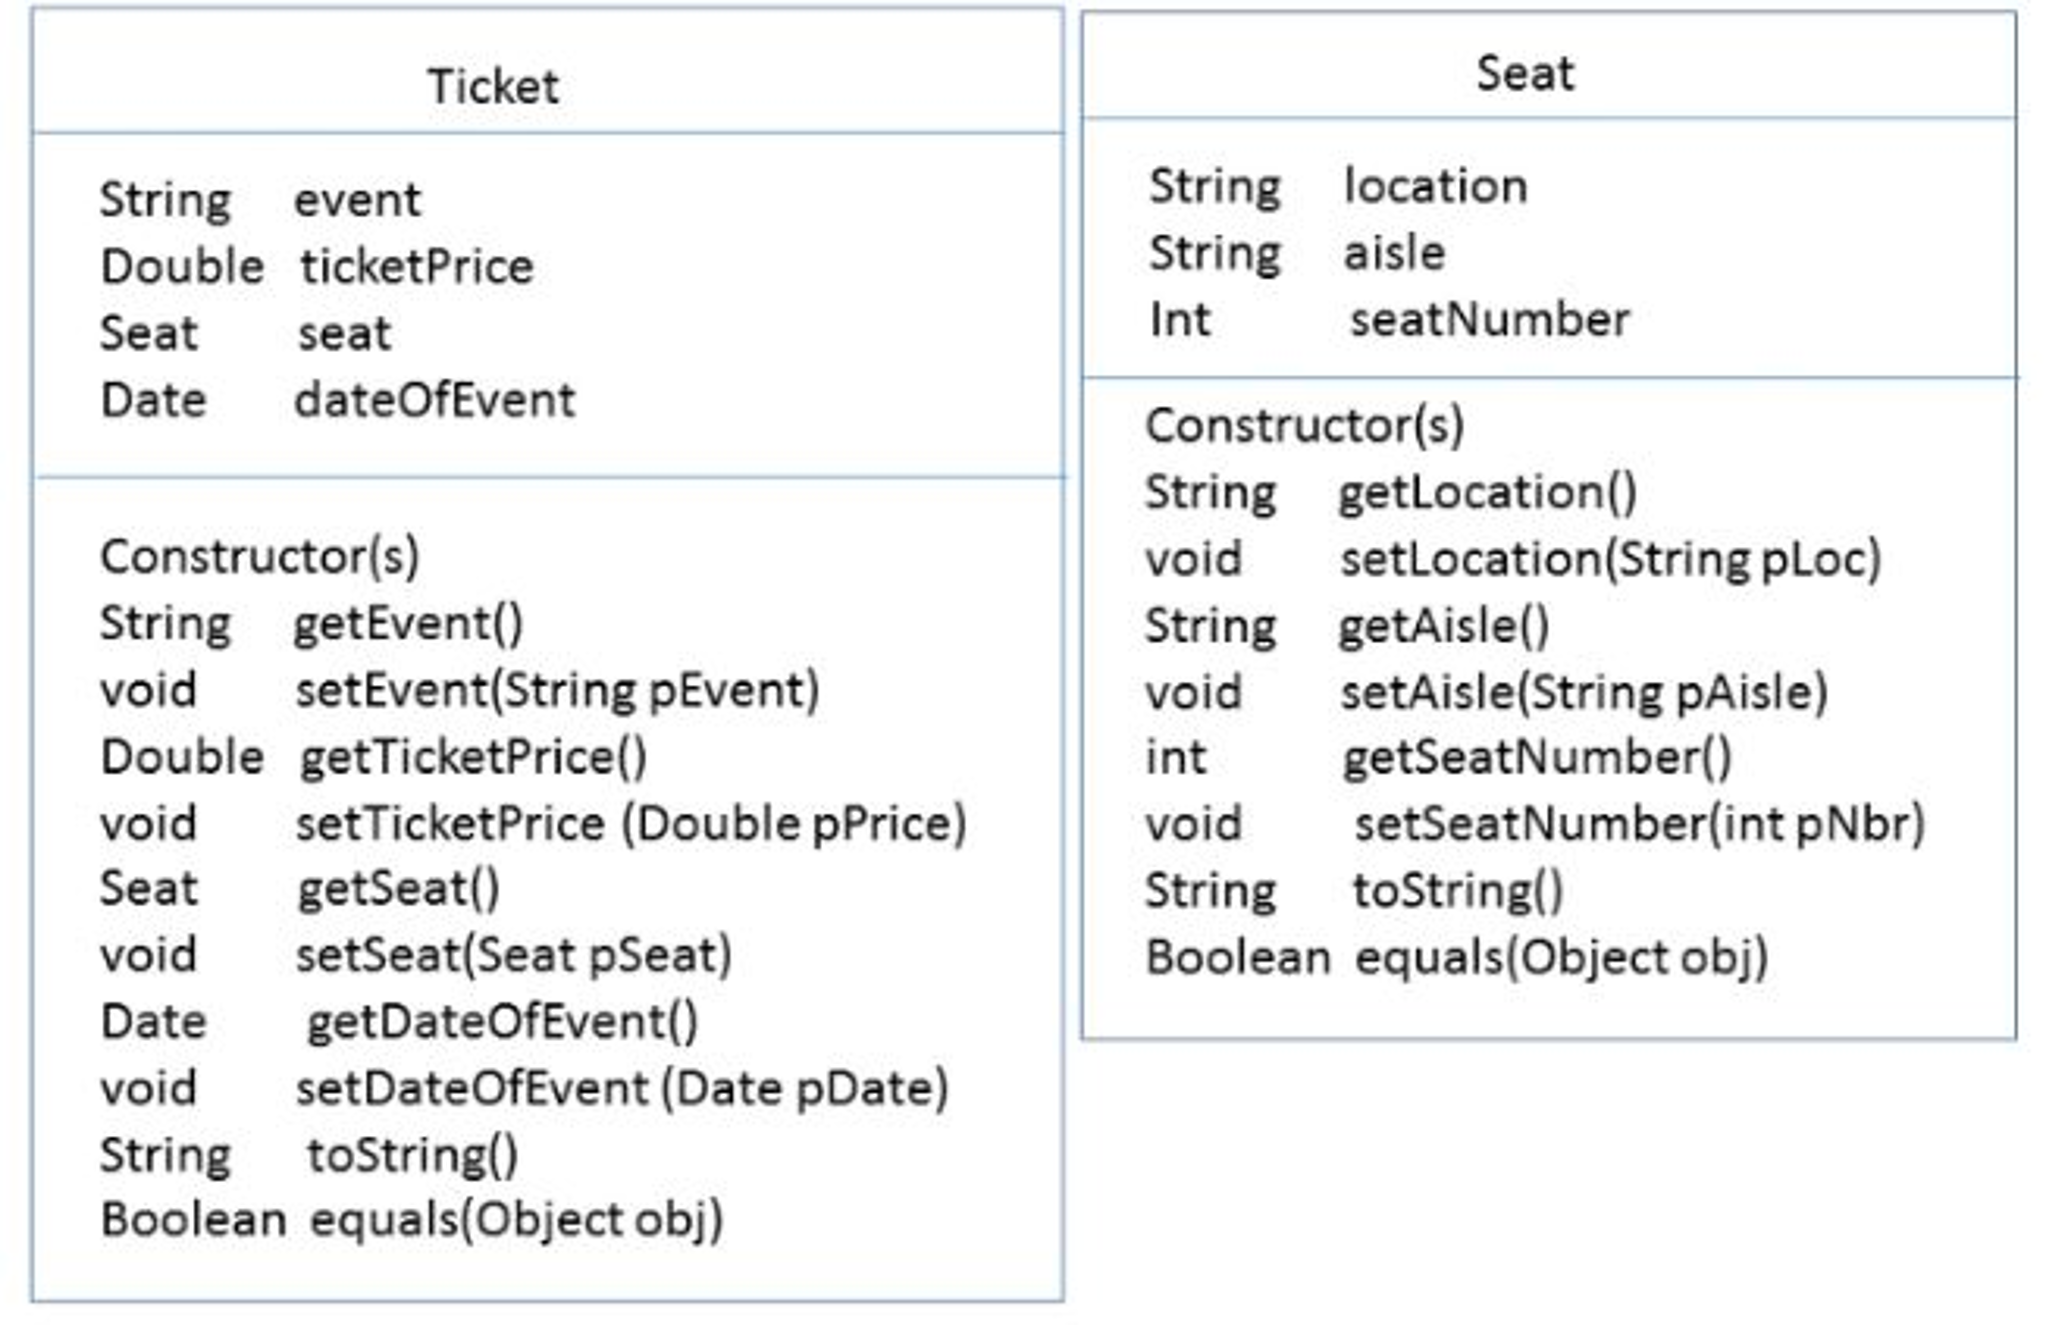 Solved write two java classes for this assignment per the ticket seat string event double ticketprice seat seat date dateofevent string location string aisle int seatnumber ccuart Choice Image